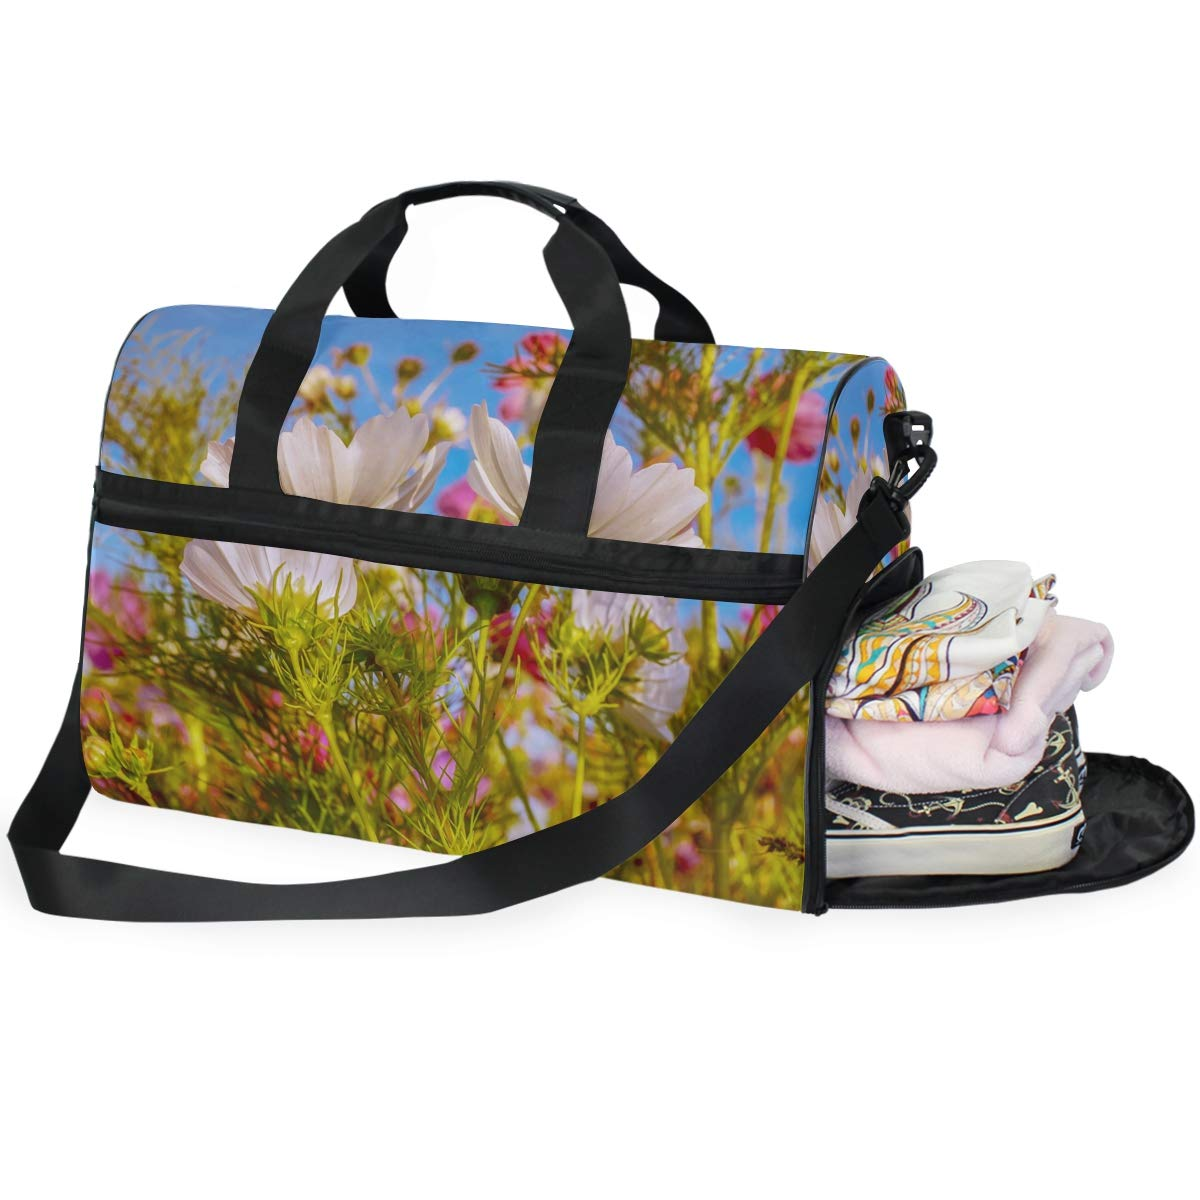 FAJRO Gym Bag Travel Duffel Express Weekender Bag Cosmea Flower Carry On Luggage with Shoe Pouch